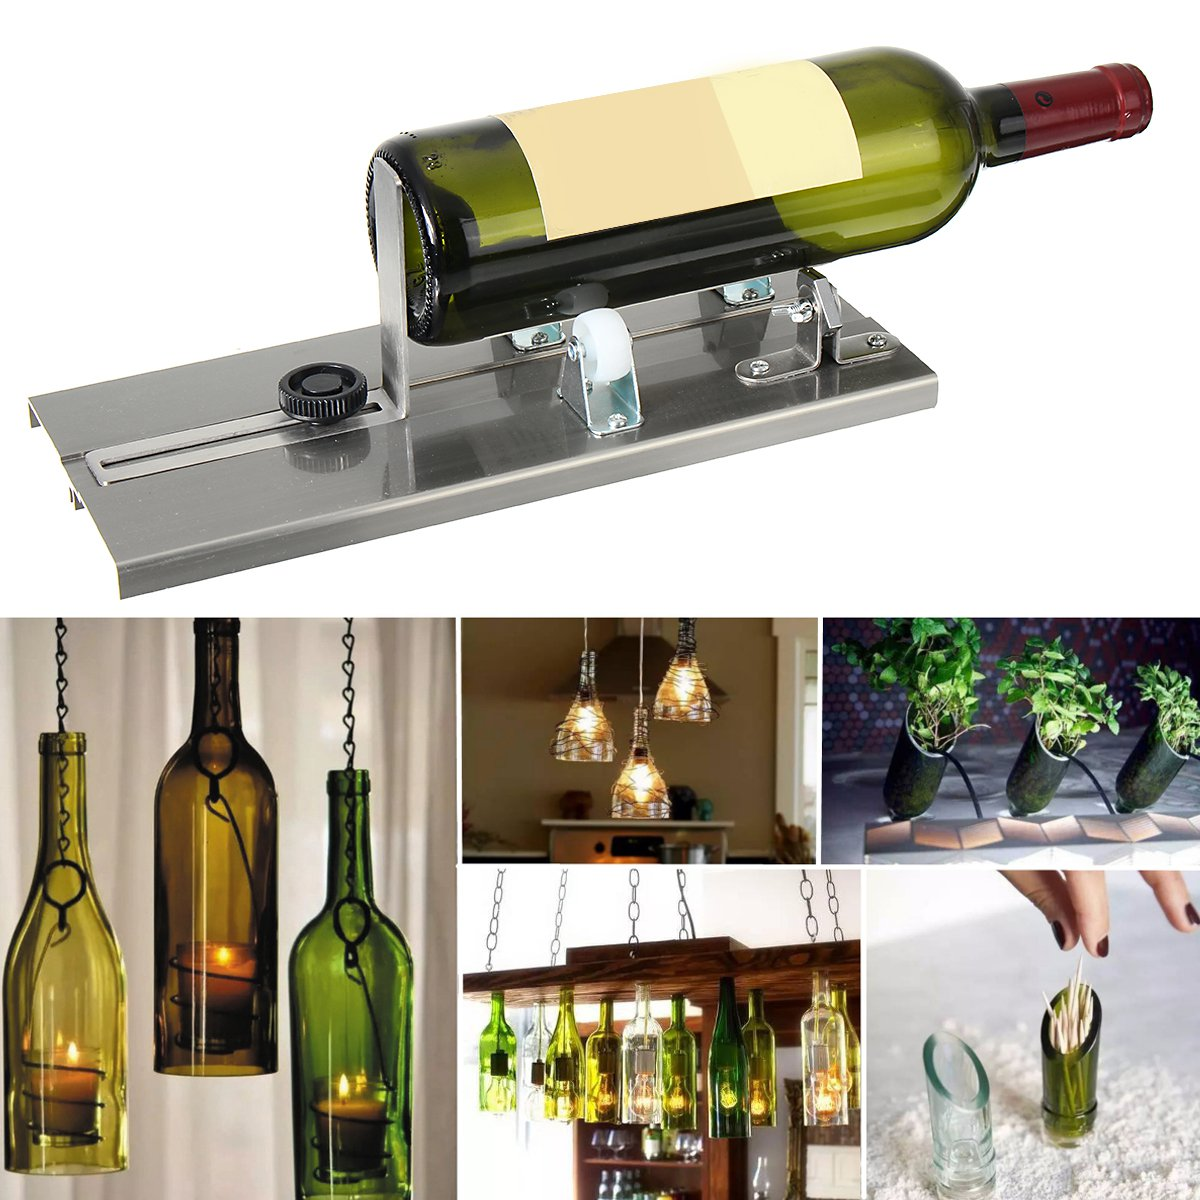 DIY Glass Bottle Cutter Machine Beer Wine Jar Recycle Craft Cutting Tool Kit Aluminum Alloy Glass Sculptures Construction Tools